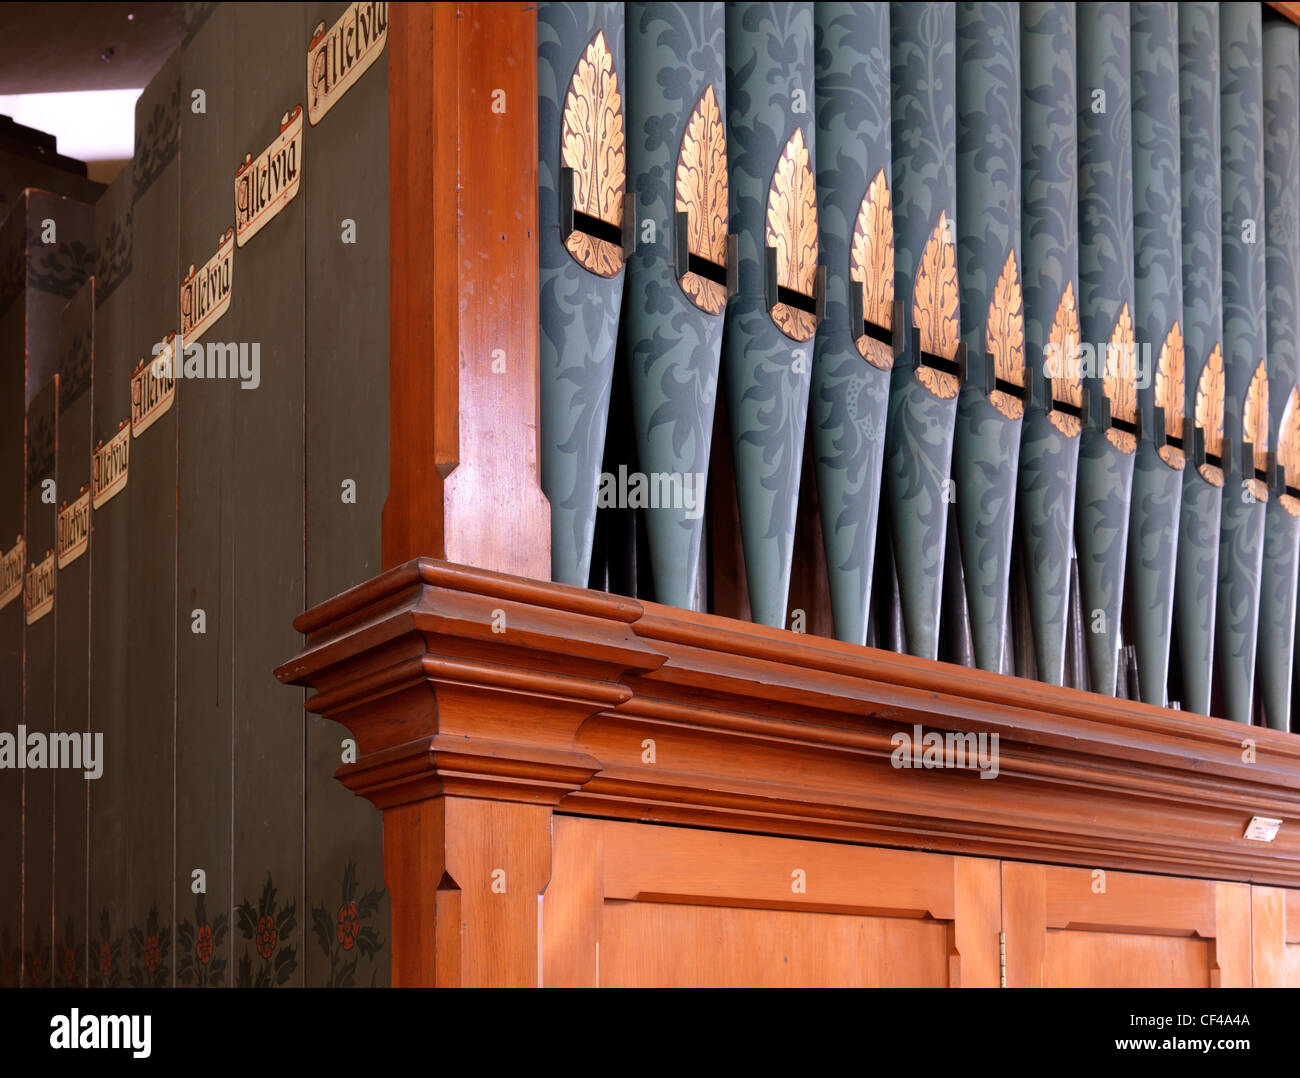 Detail of the pipe organ in St. Mary Magdalene Church in Barkway. - Stock Image